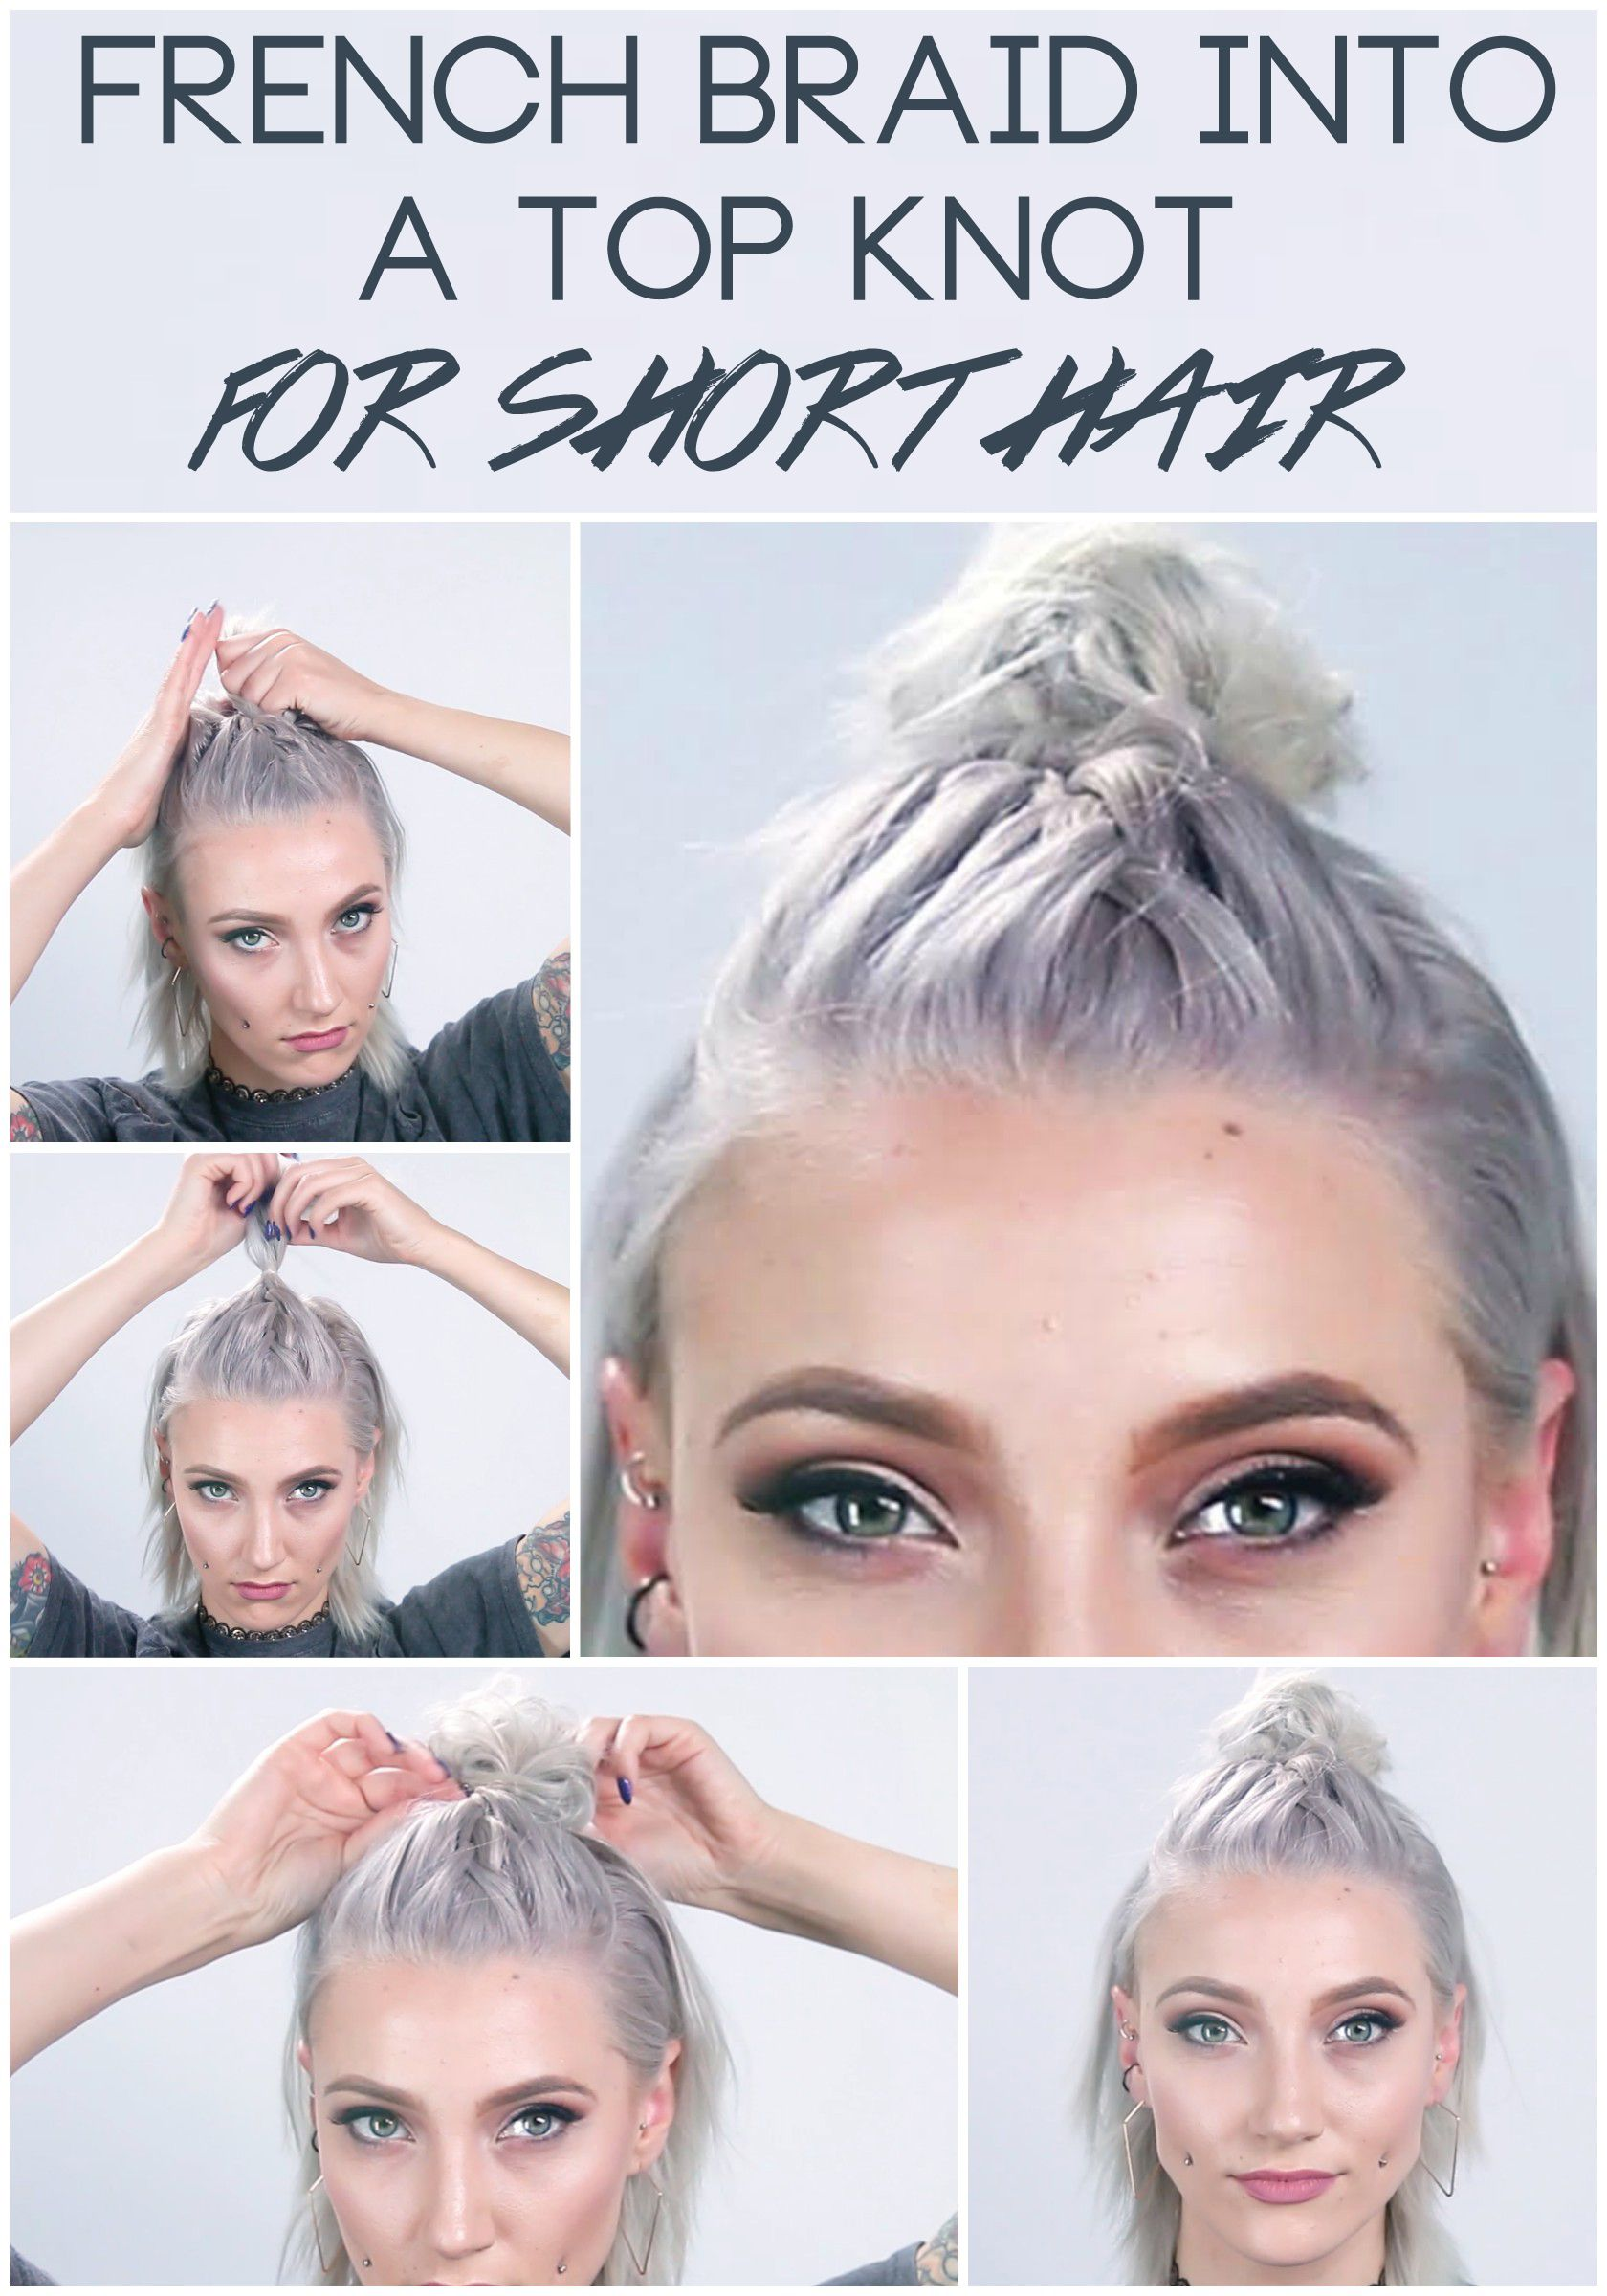 How to Get A French Braid Top Knot for Short Hair | Hair ...